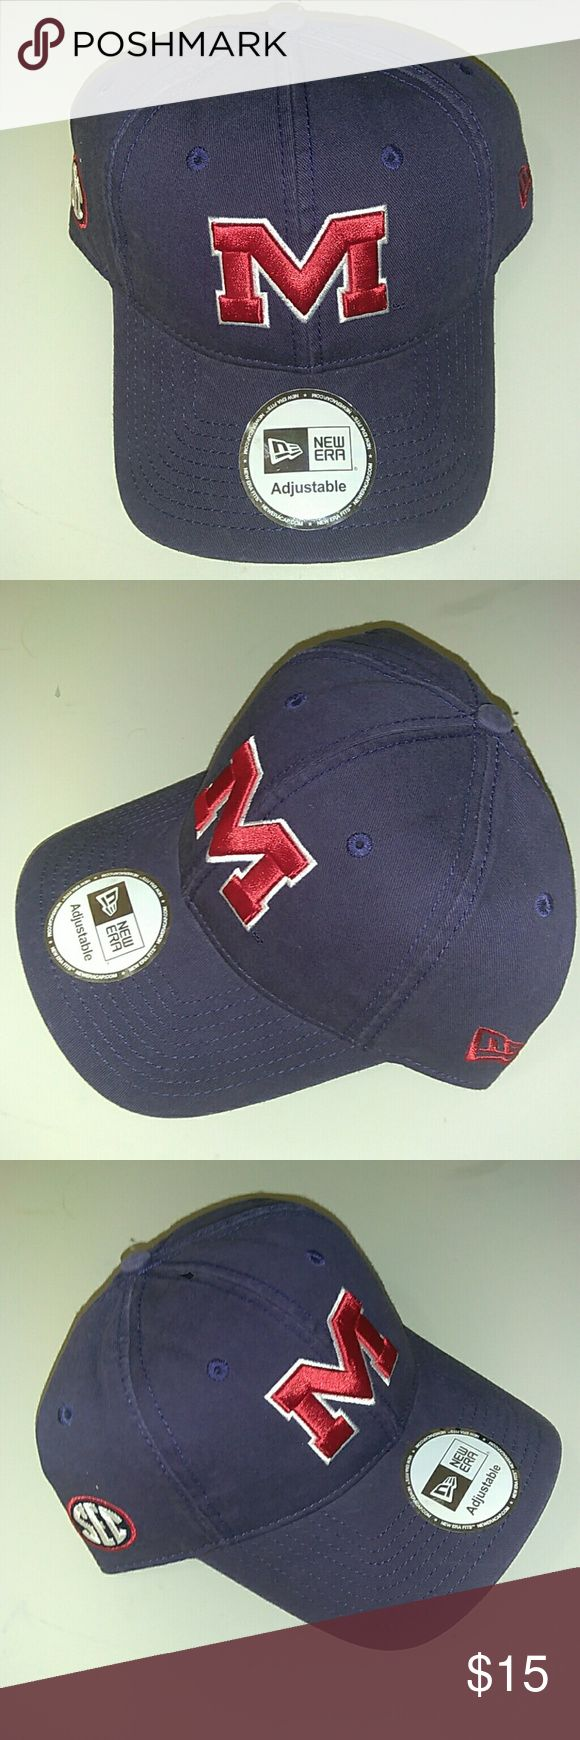 New Era Ole Miss Football Hat Cap New with tags Accessories Hats